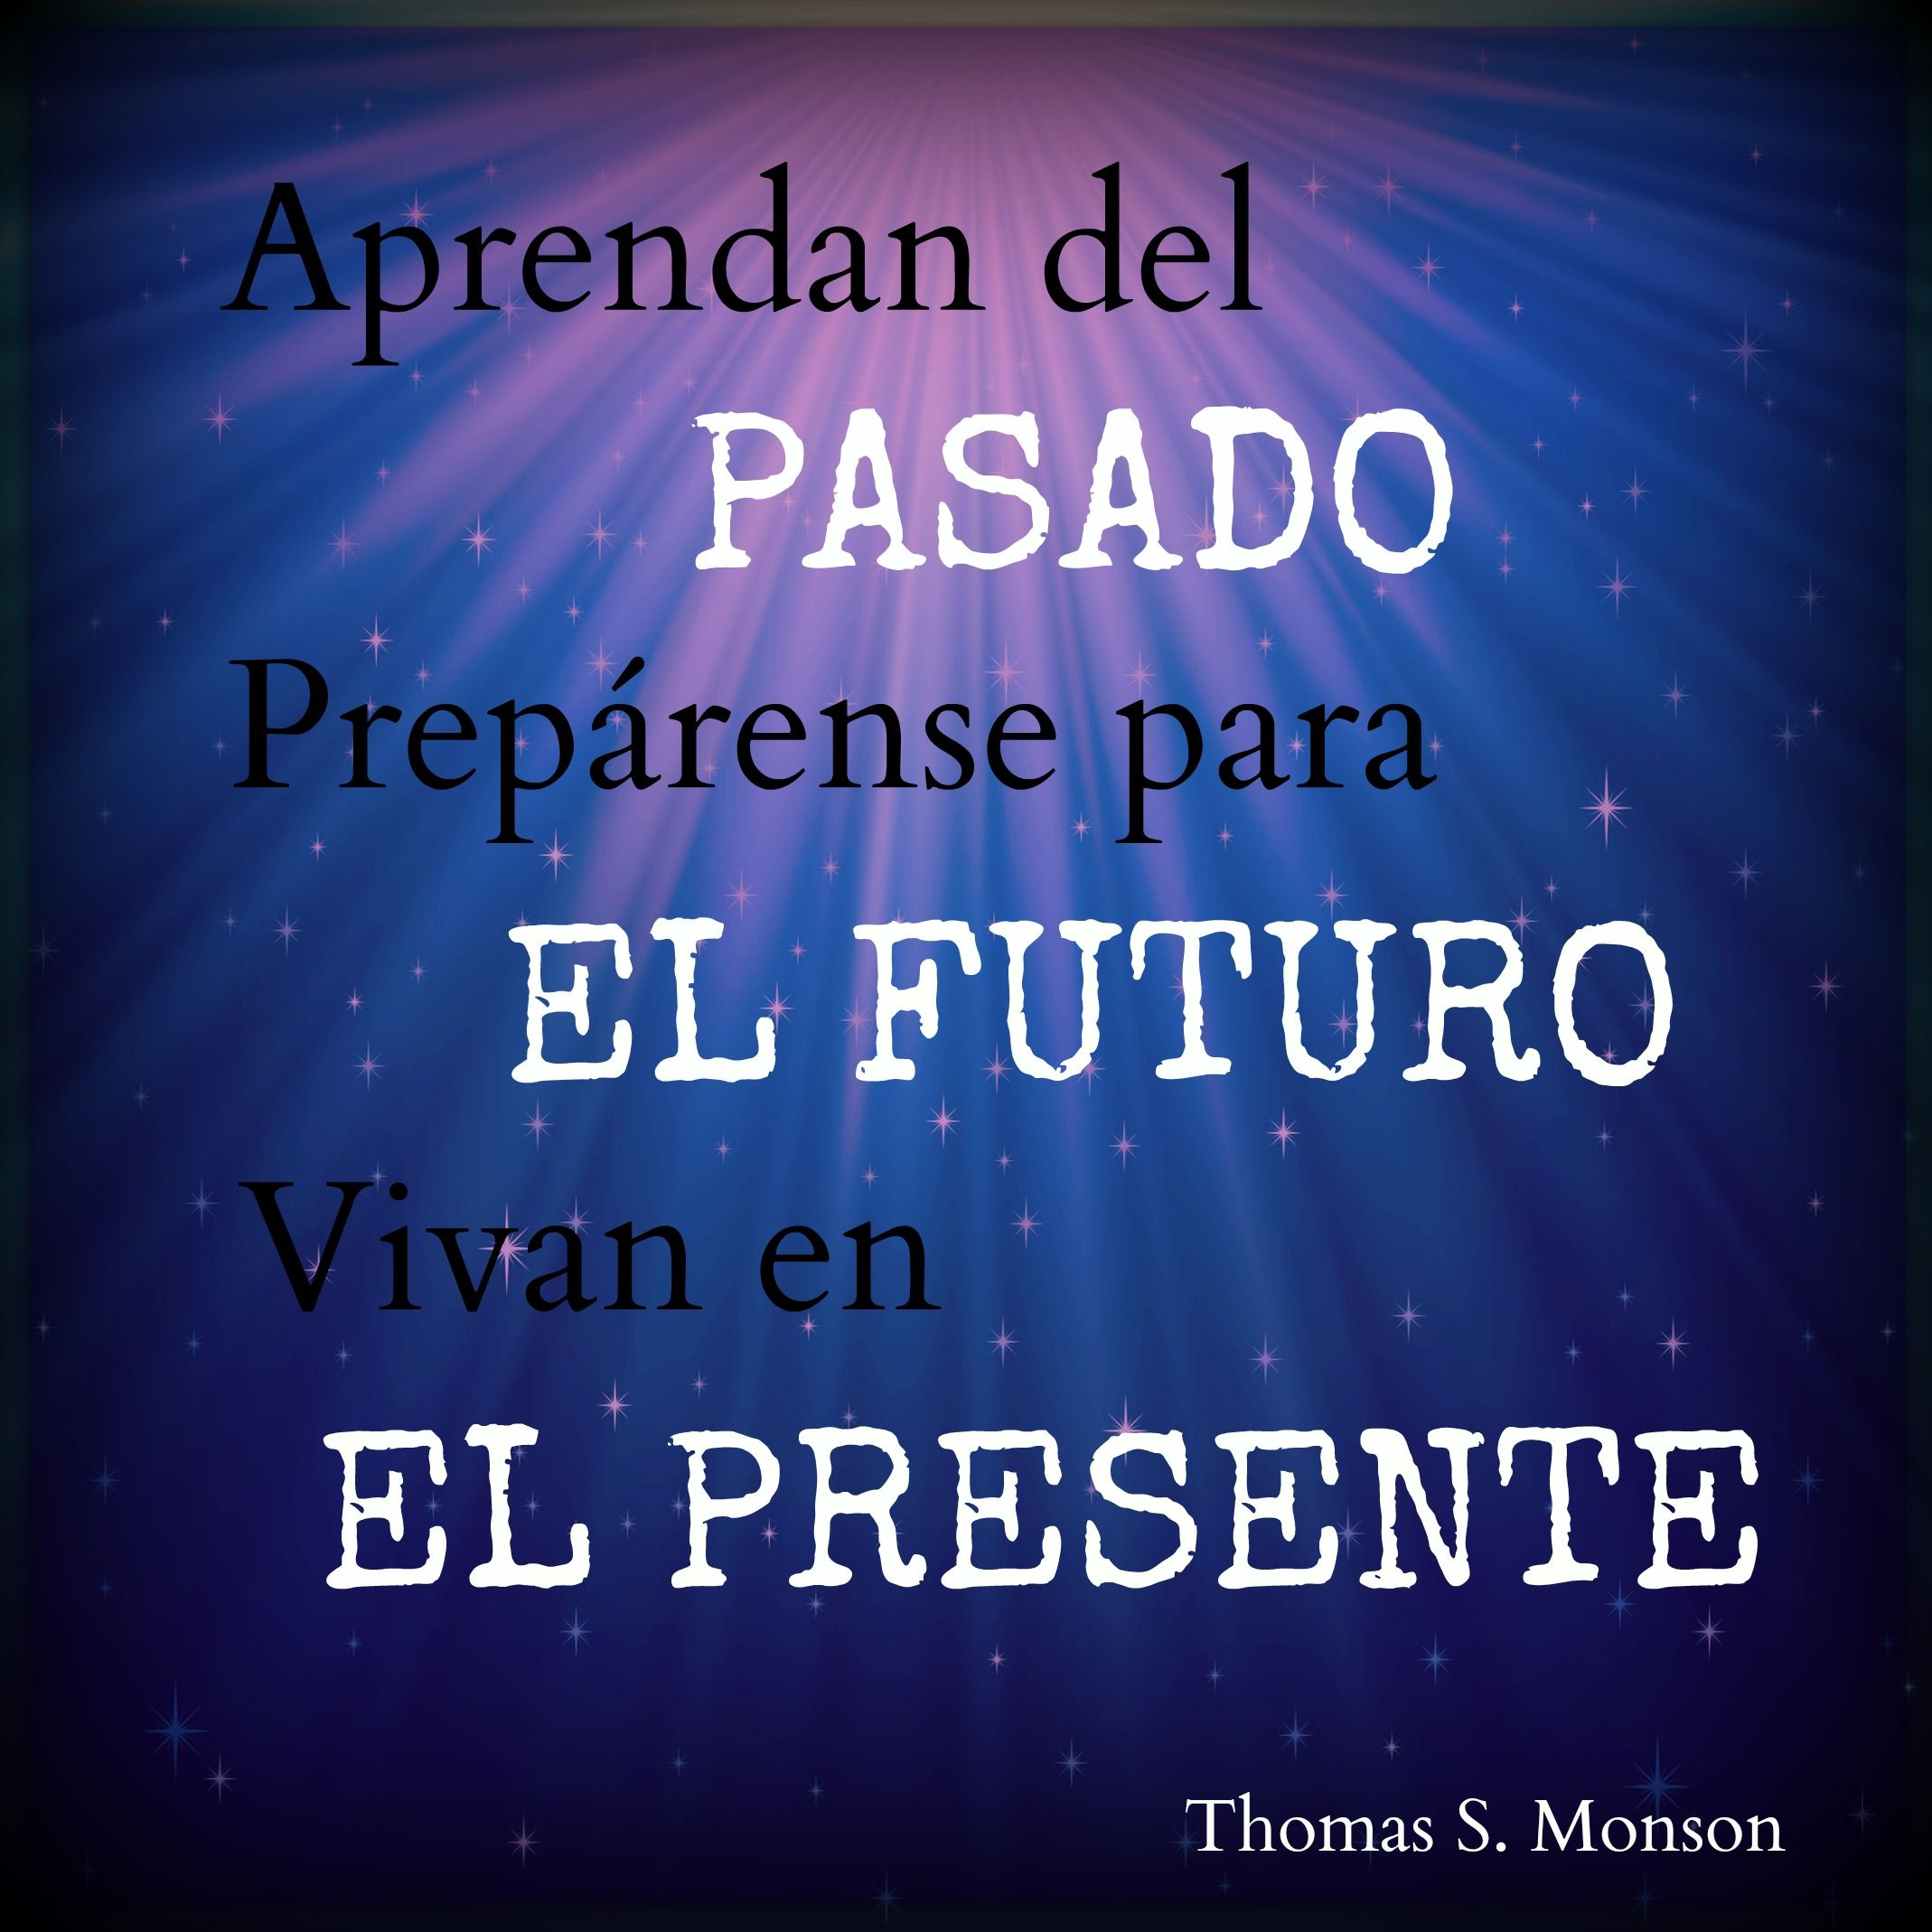 Lds quotes in spanish past present future pasado el futuro el presente